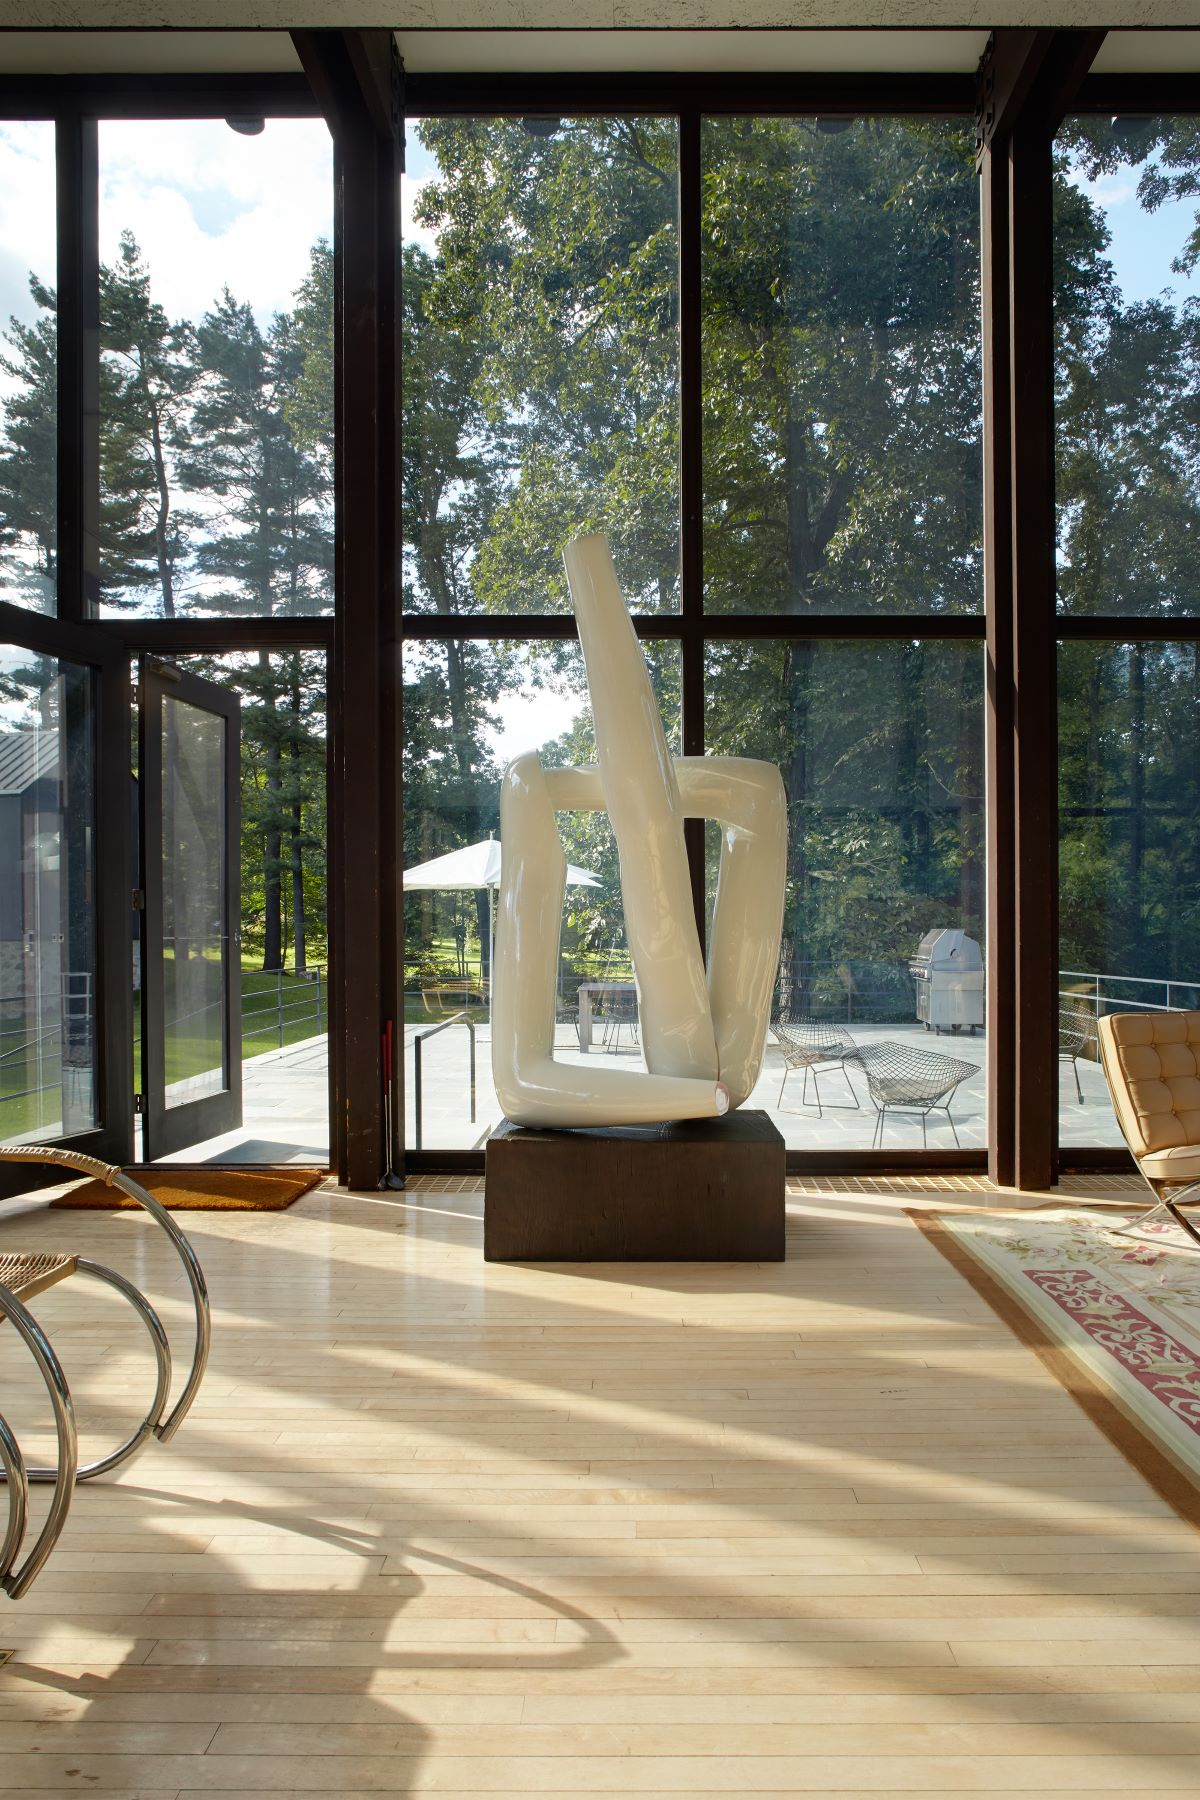 Additional photo for property listing at Stunning Philip Johnson Modern 218 Sleepy Hollow Road New Canaan, Connecticut 06840 Estados Unidos